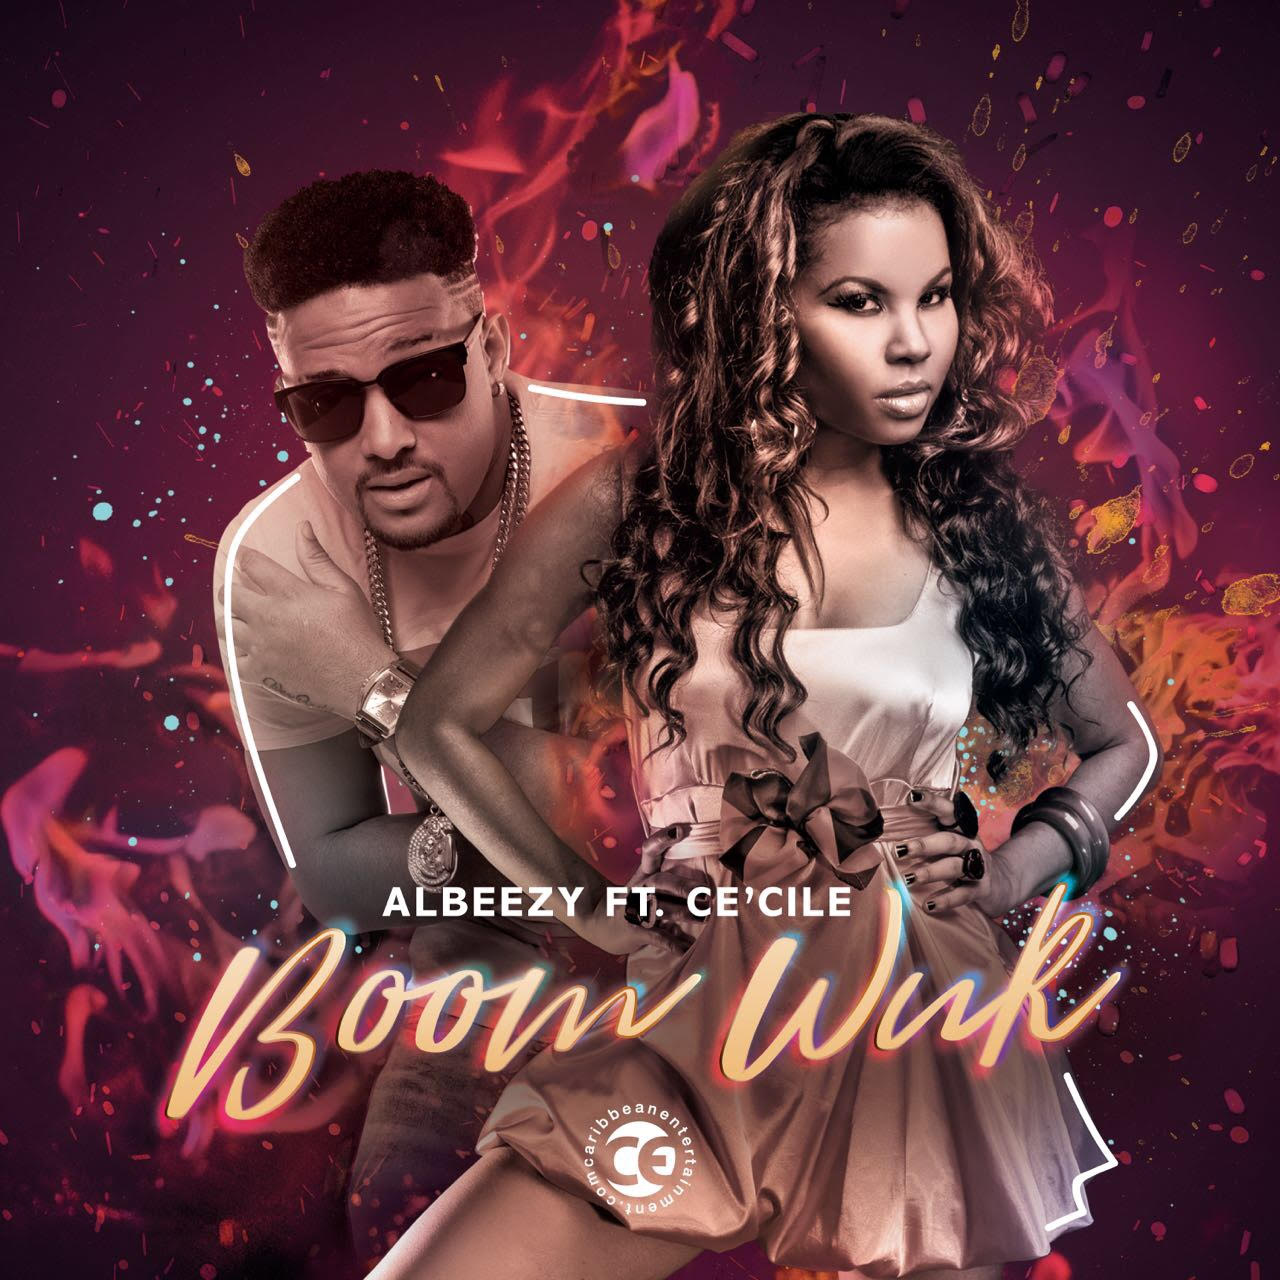 Picture cover for the music video AlBeezy Ft. Cecile - Boom Wuk